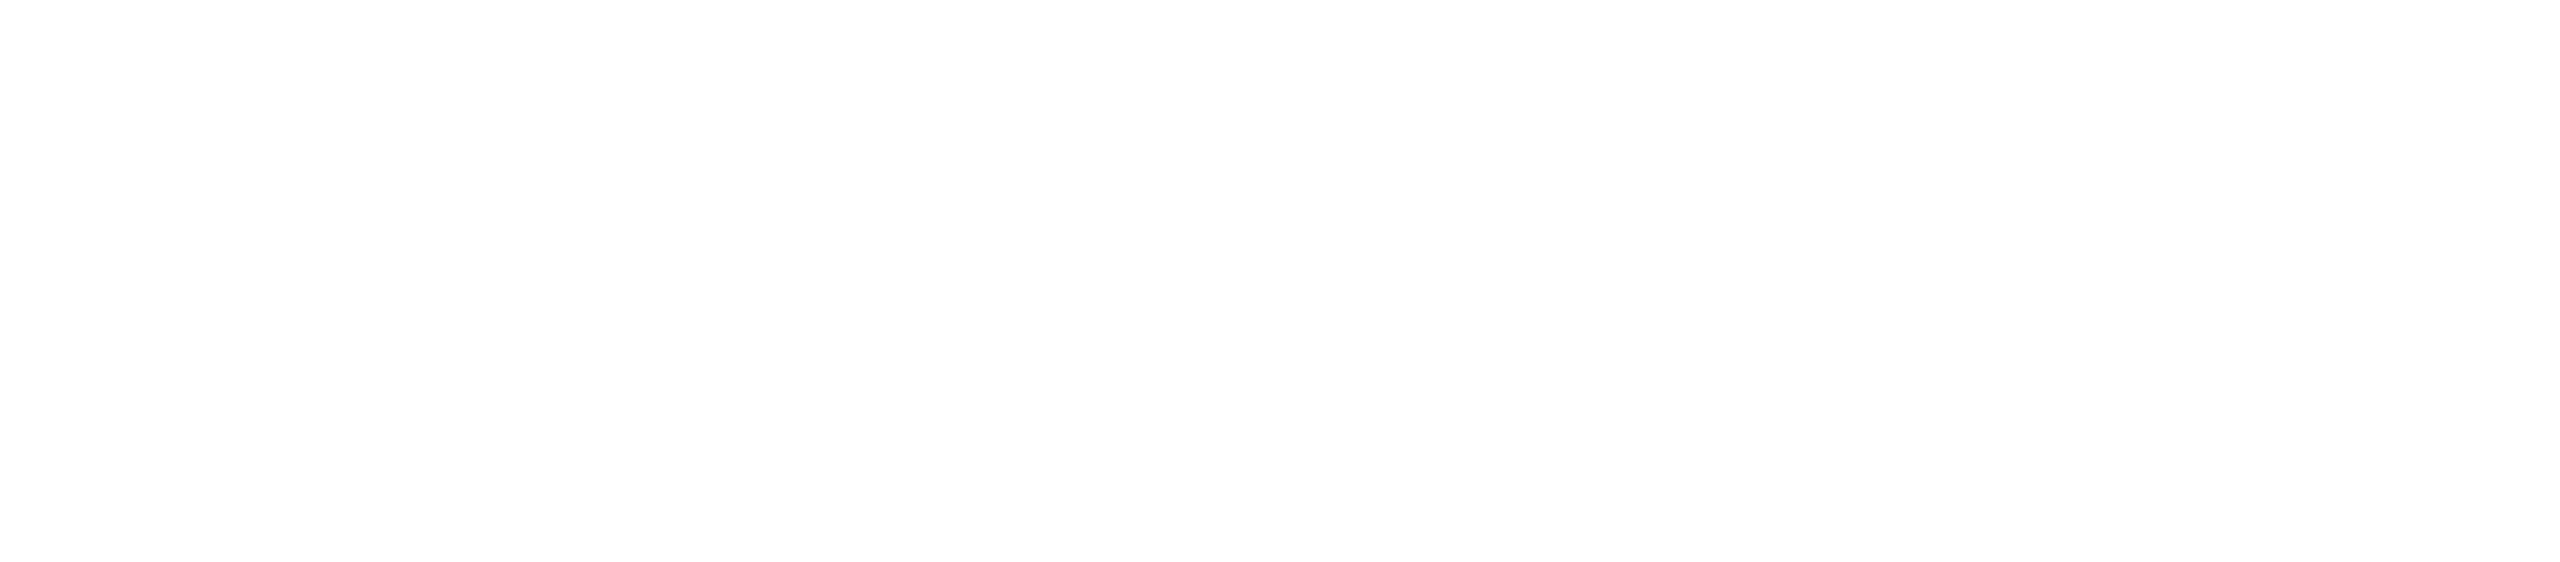 Coaching Advantage for Leaders